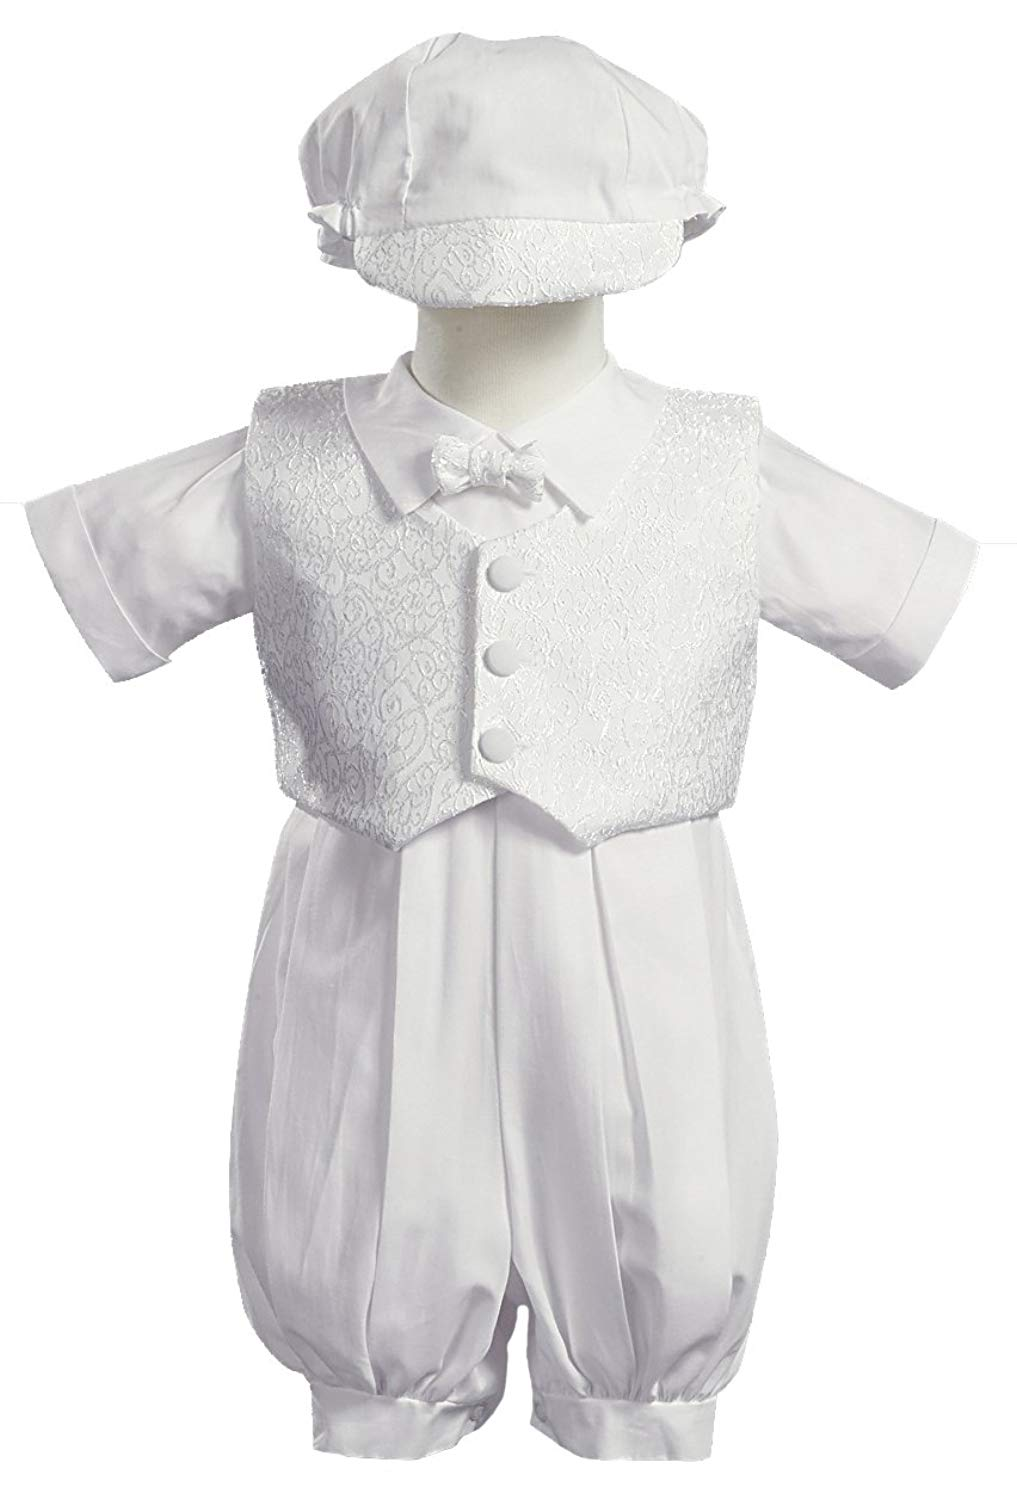 2680fa0ff Cheap Baby Boy Cotton Christening Outfits